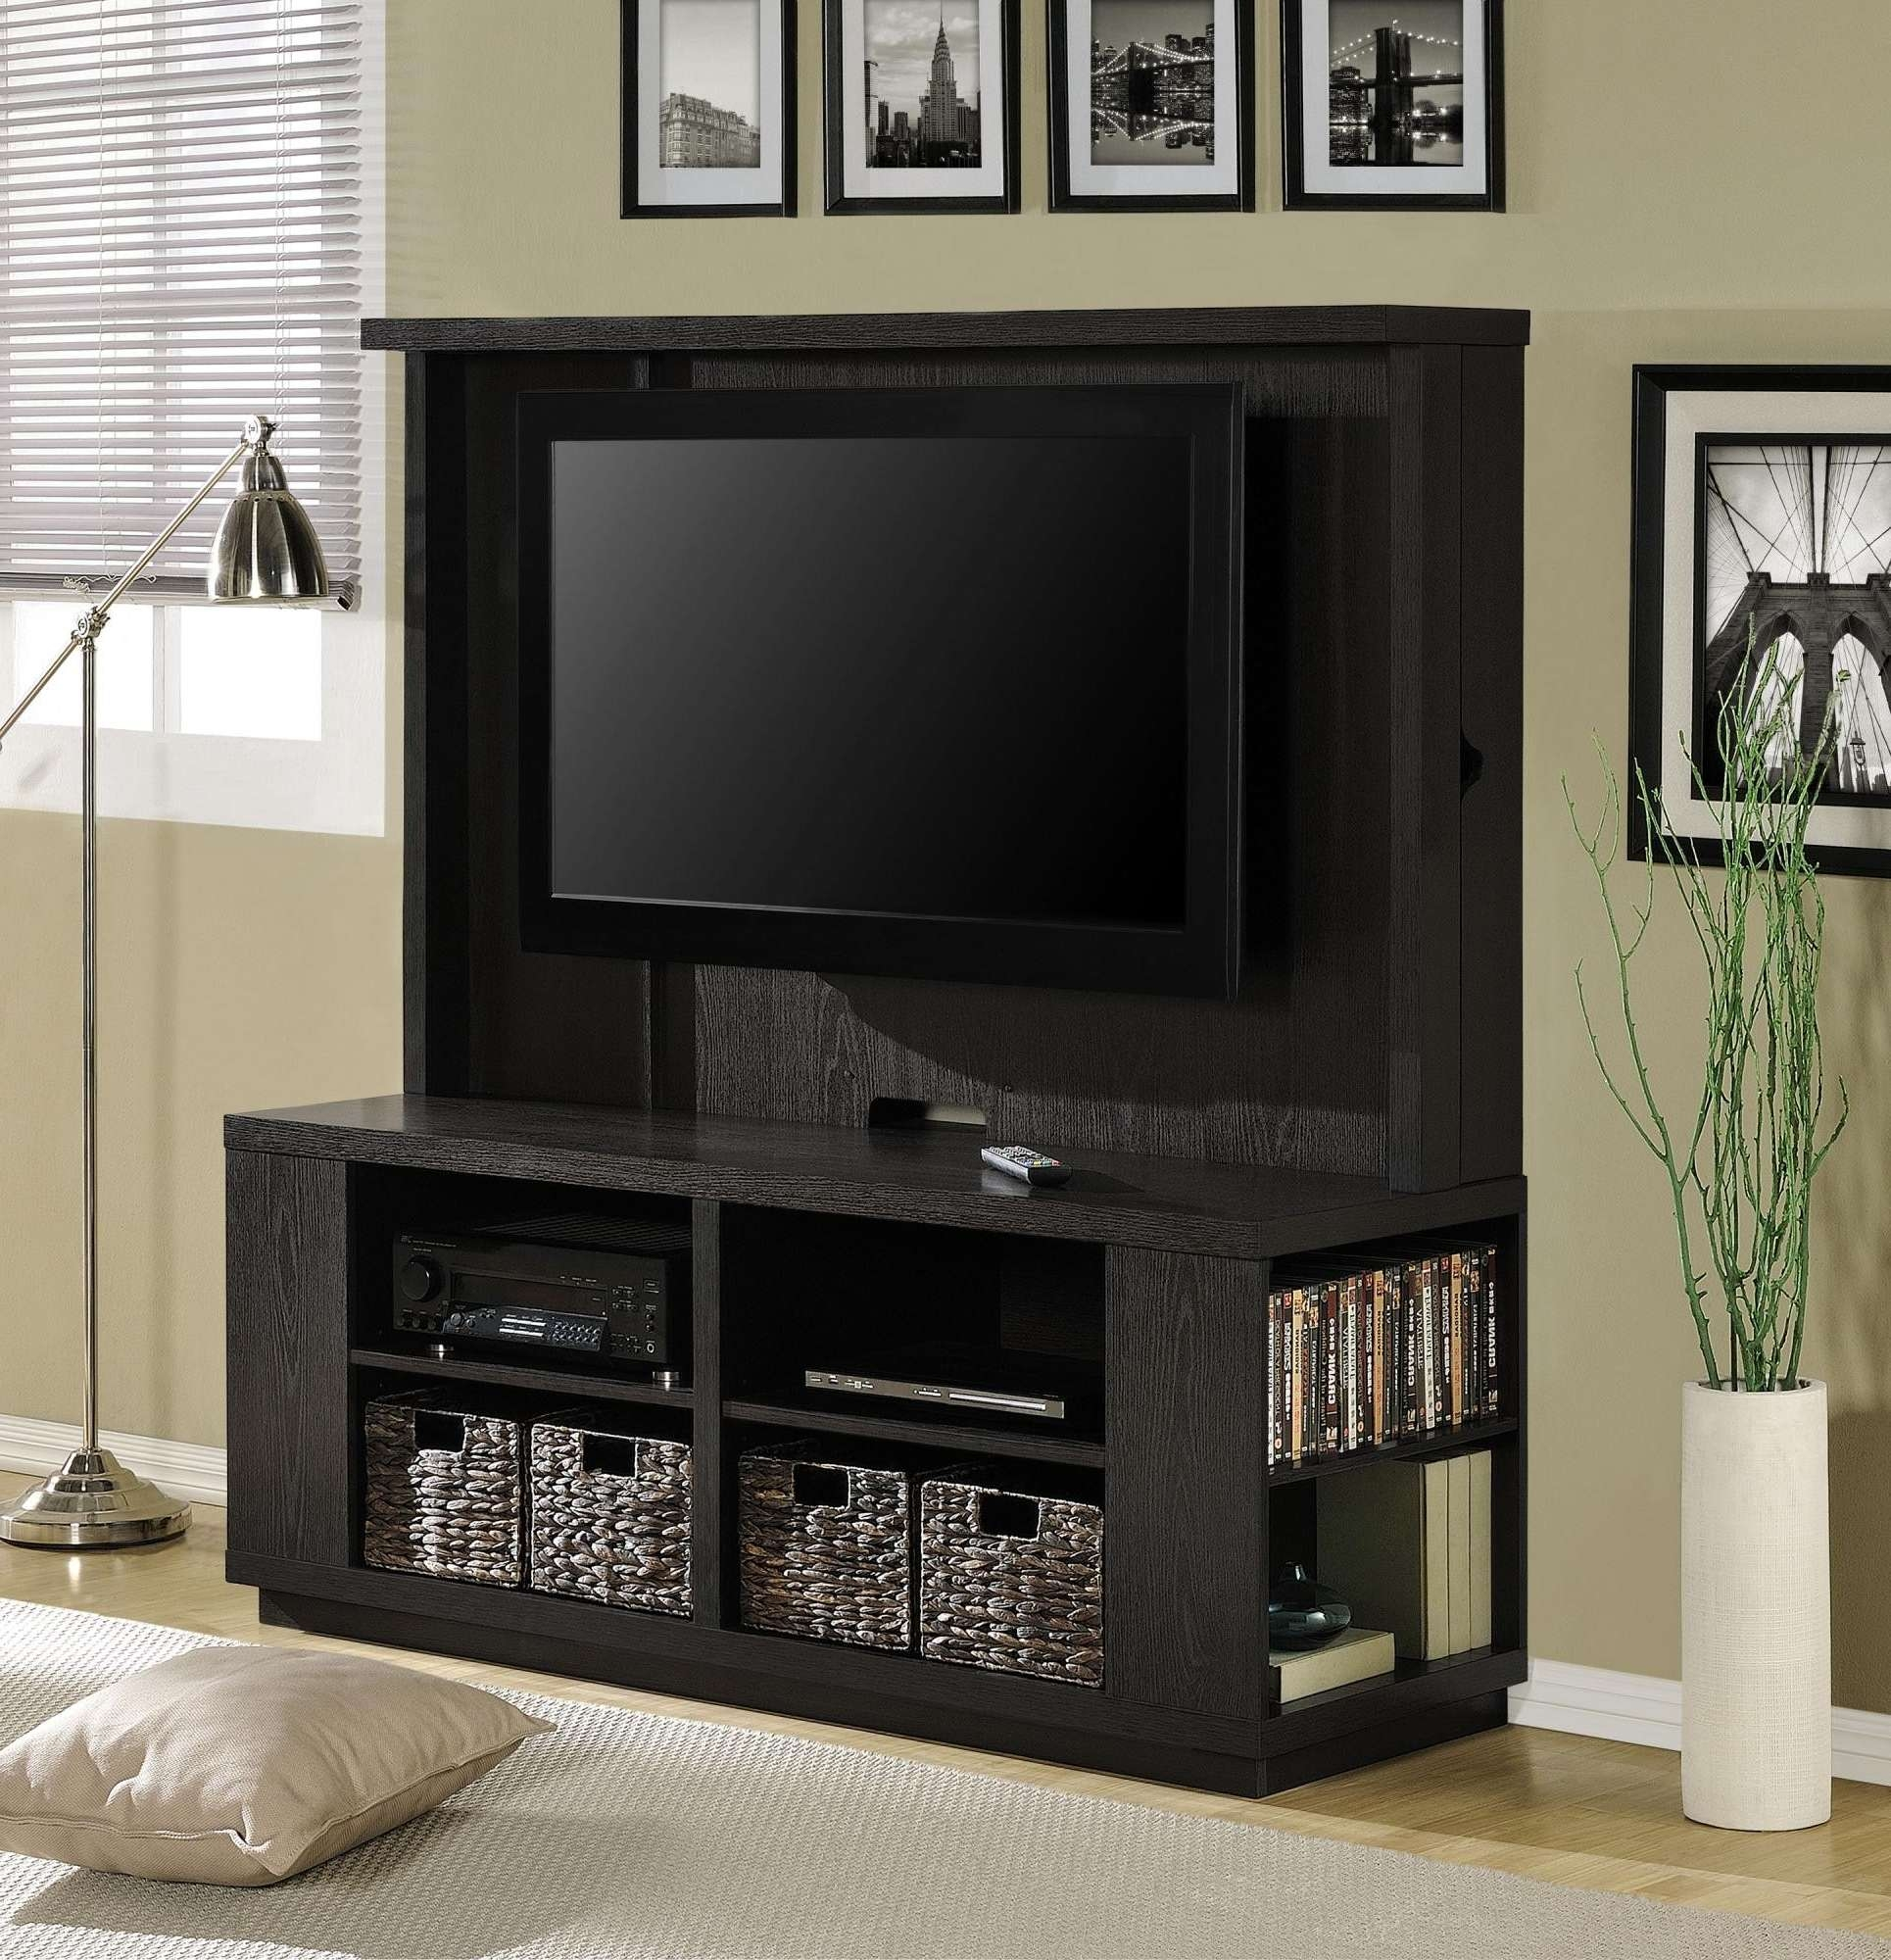 Shelves : Marvelous Small Black Wall Mounted Tv Stand With Storage Inside Tv Cabinets With Storage (View 12 of 20)